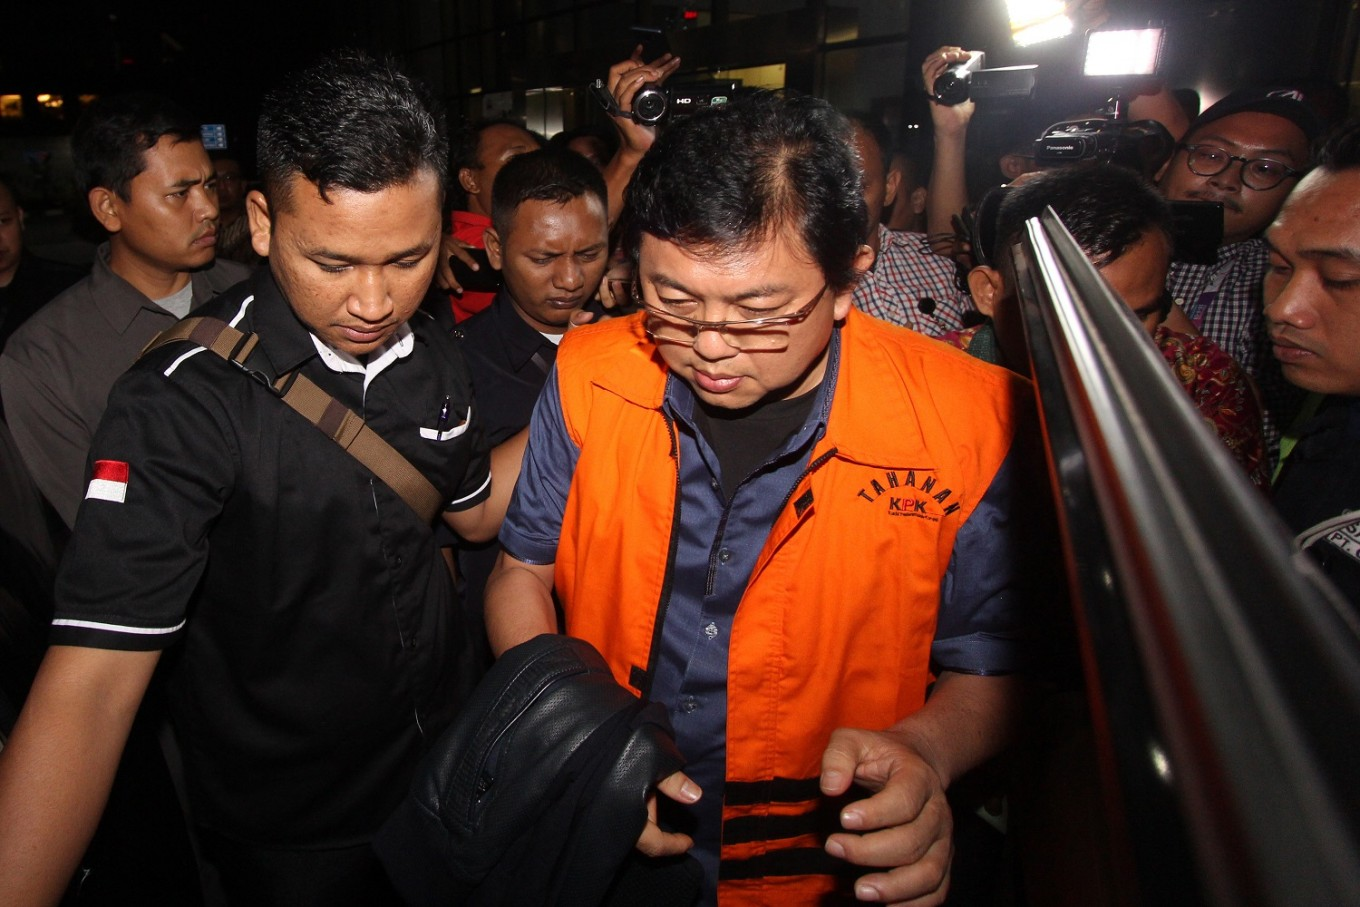 KPK indicts lawyer for Eddy Sindoro evasion plot